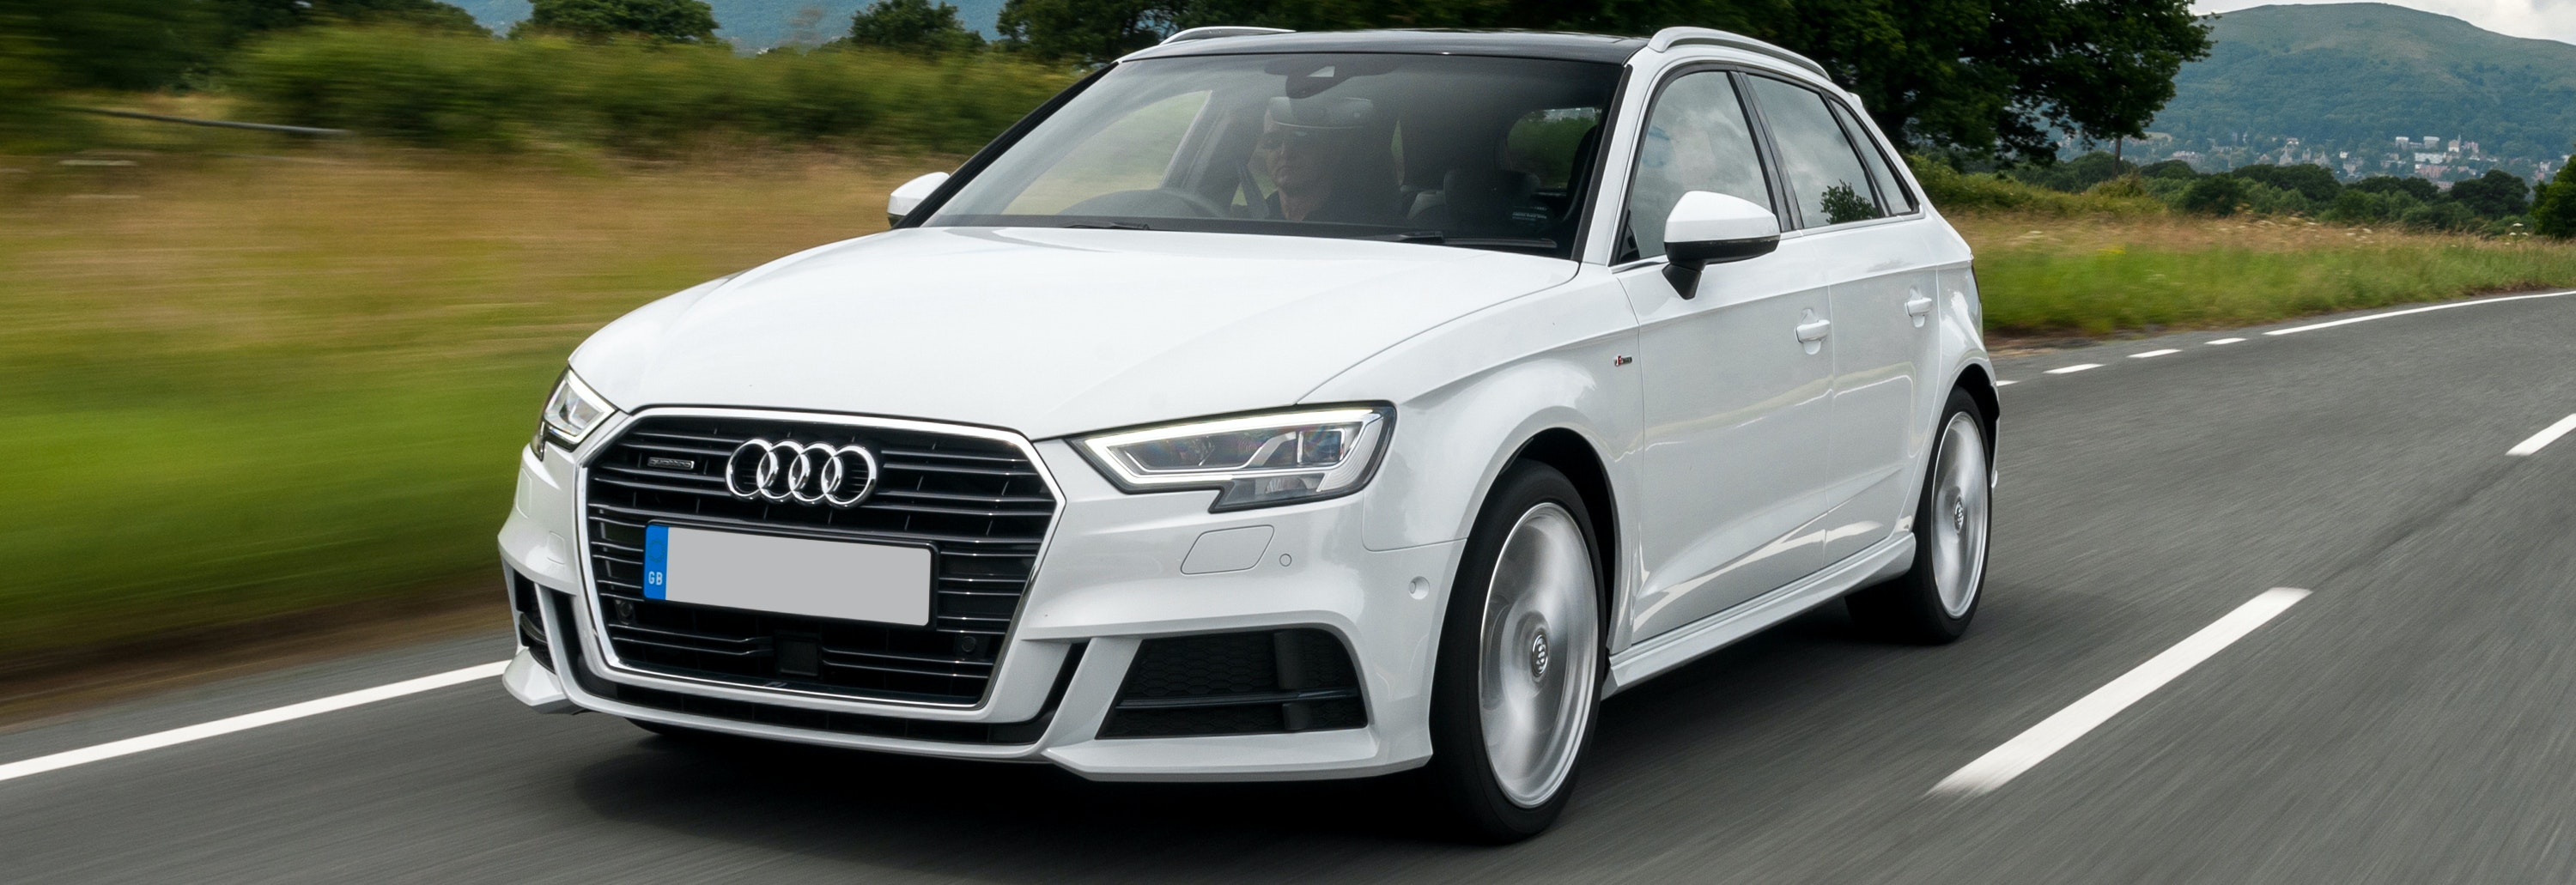 2018 audi a3 sportback white driving front